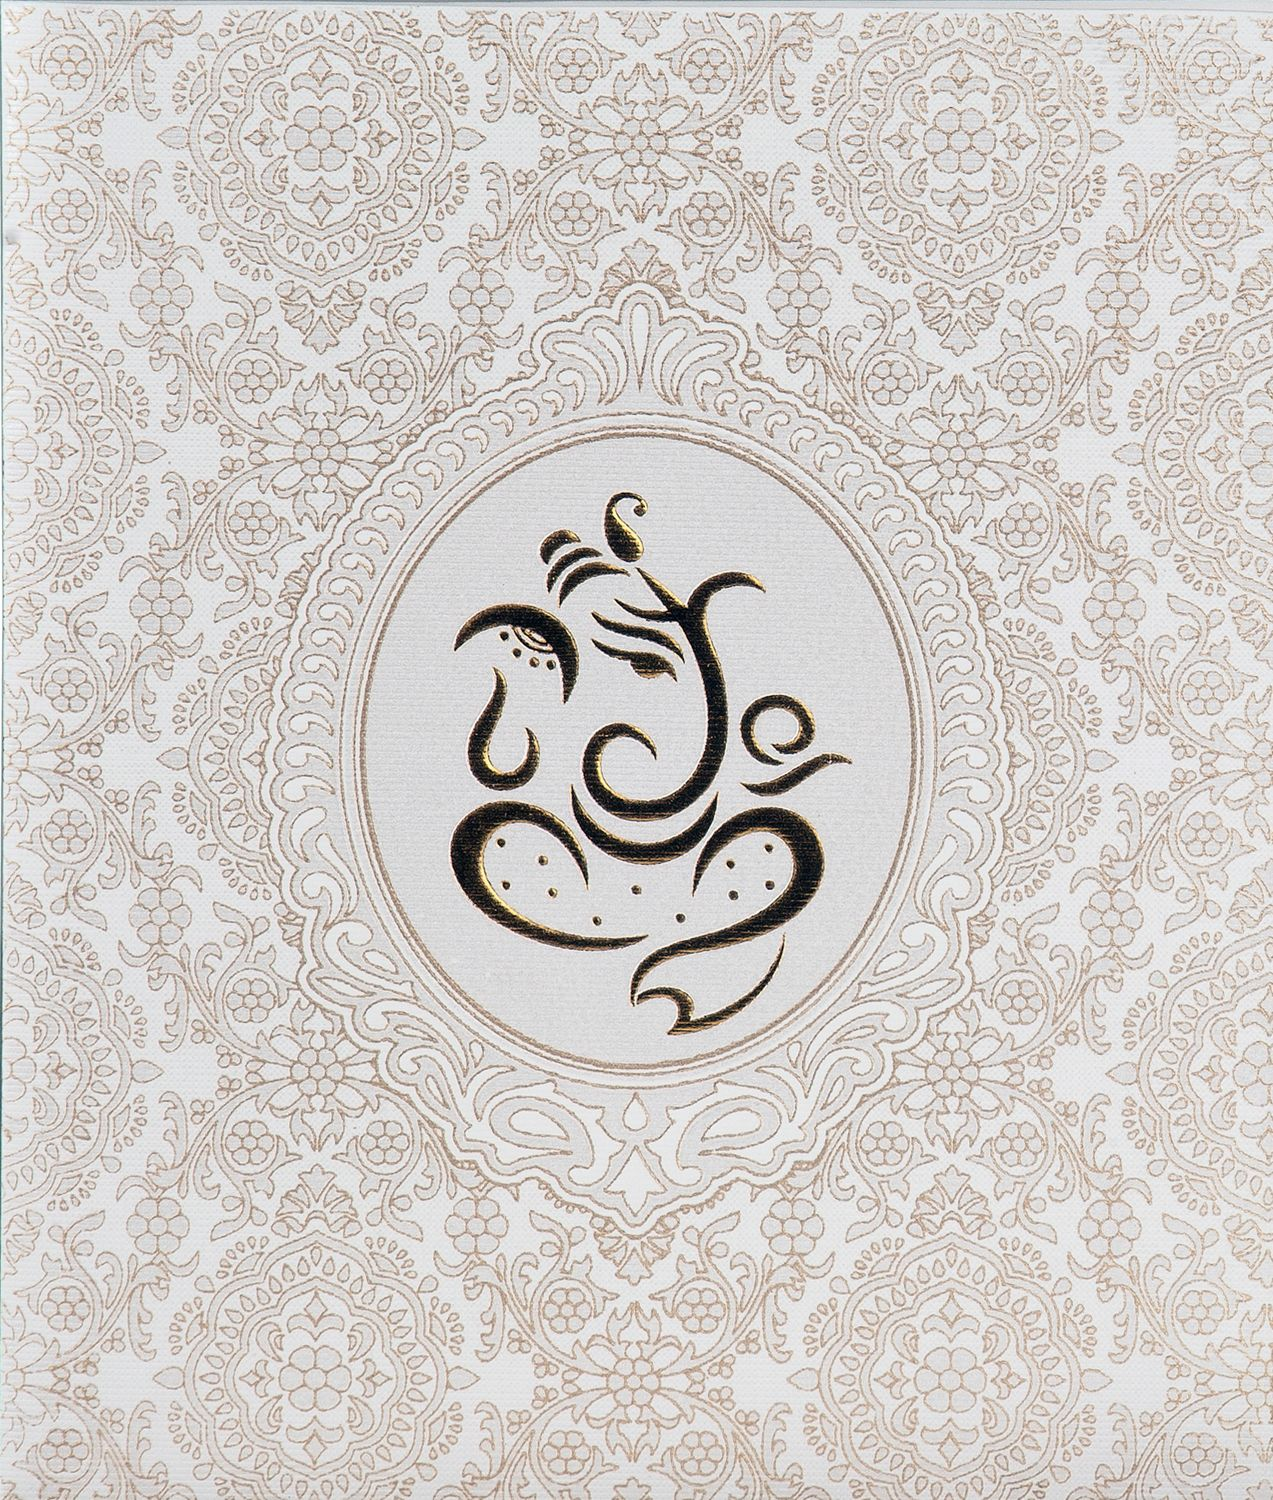 http://lovely-cards.com/products/Invitation-Cards/Hindu-Wedding ...